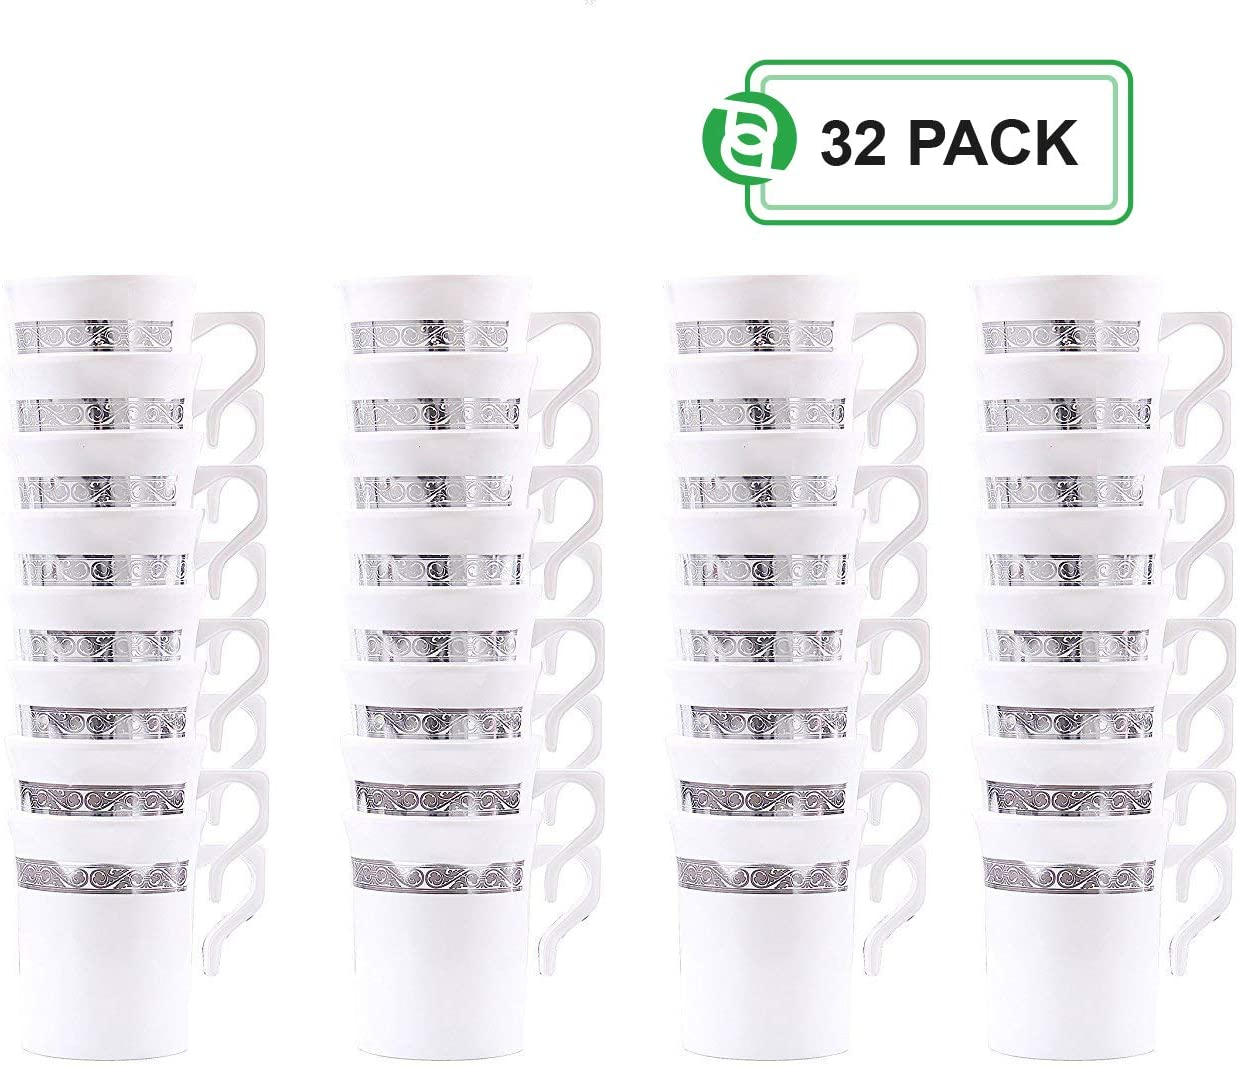 Plastic Coffee Cups   8 Ounce Disposable Tea Cups Mugs w/Handle   Elegant Insulated Coffee Mugs With Silver Rim Excellent for Weddings, Bridal Showers, Engagement Parties, Camping & More   32 Count